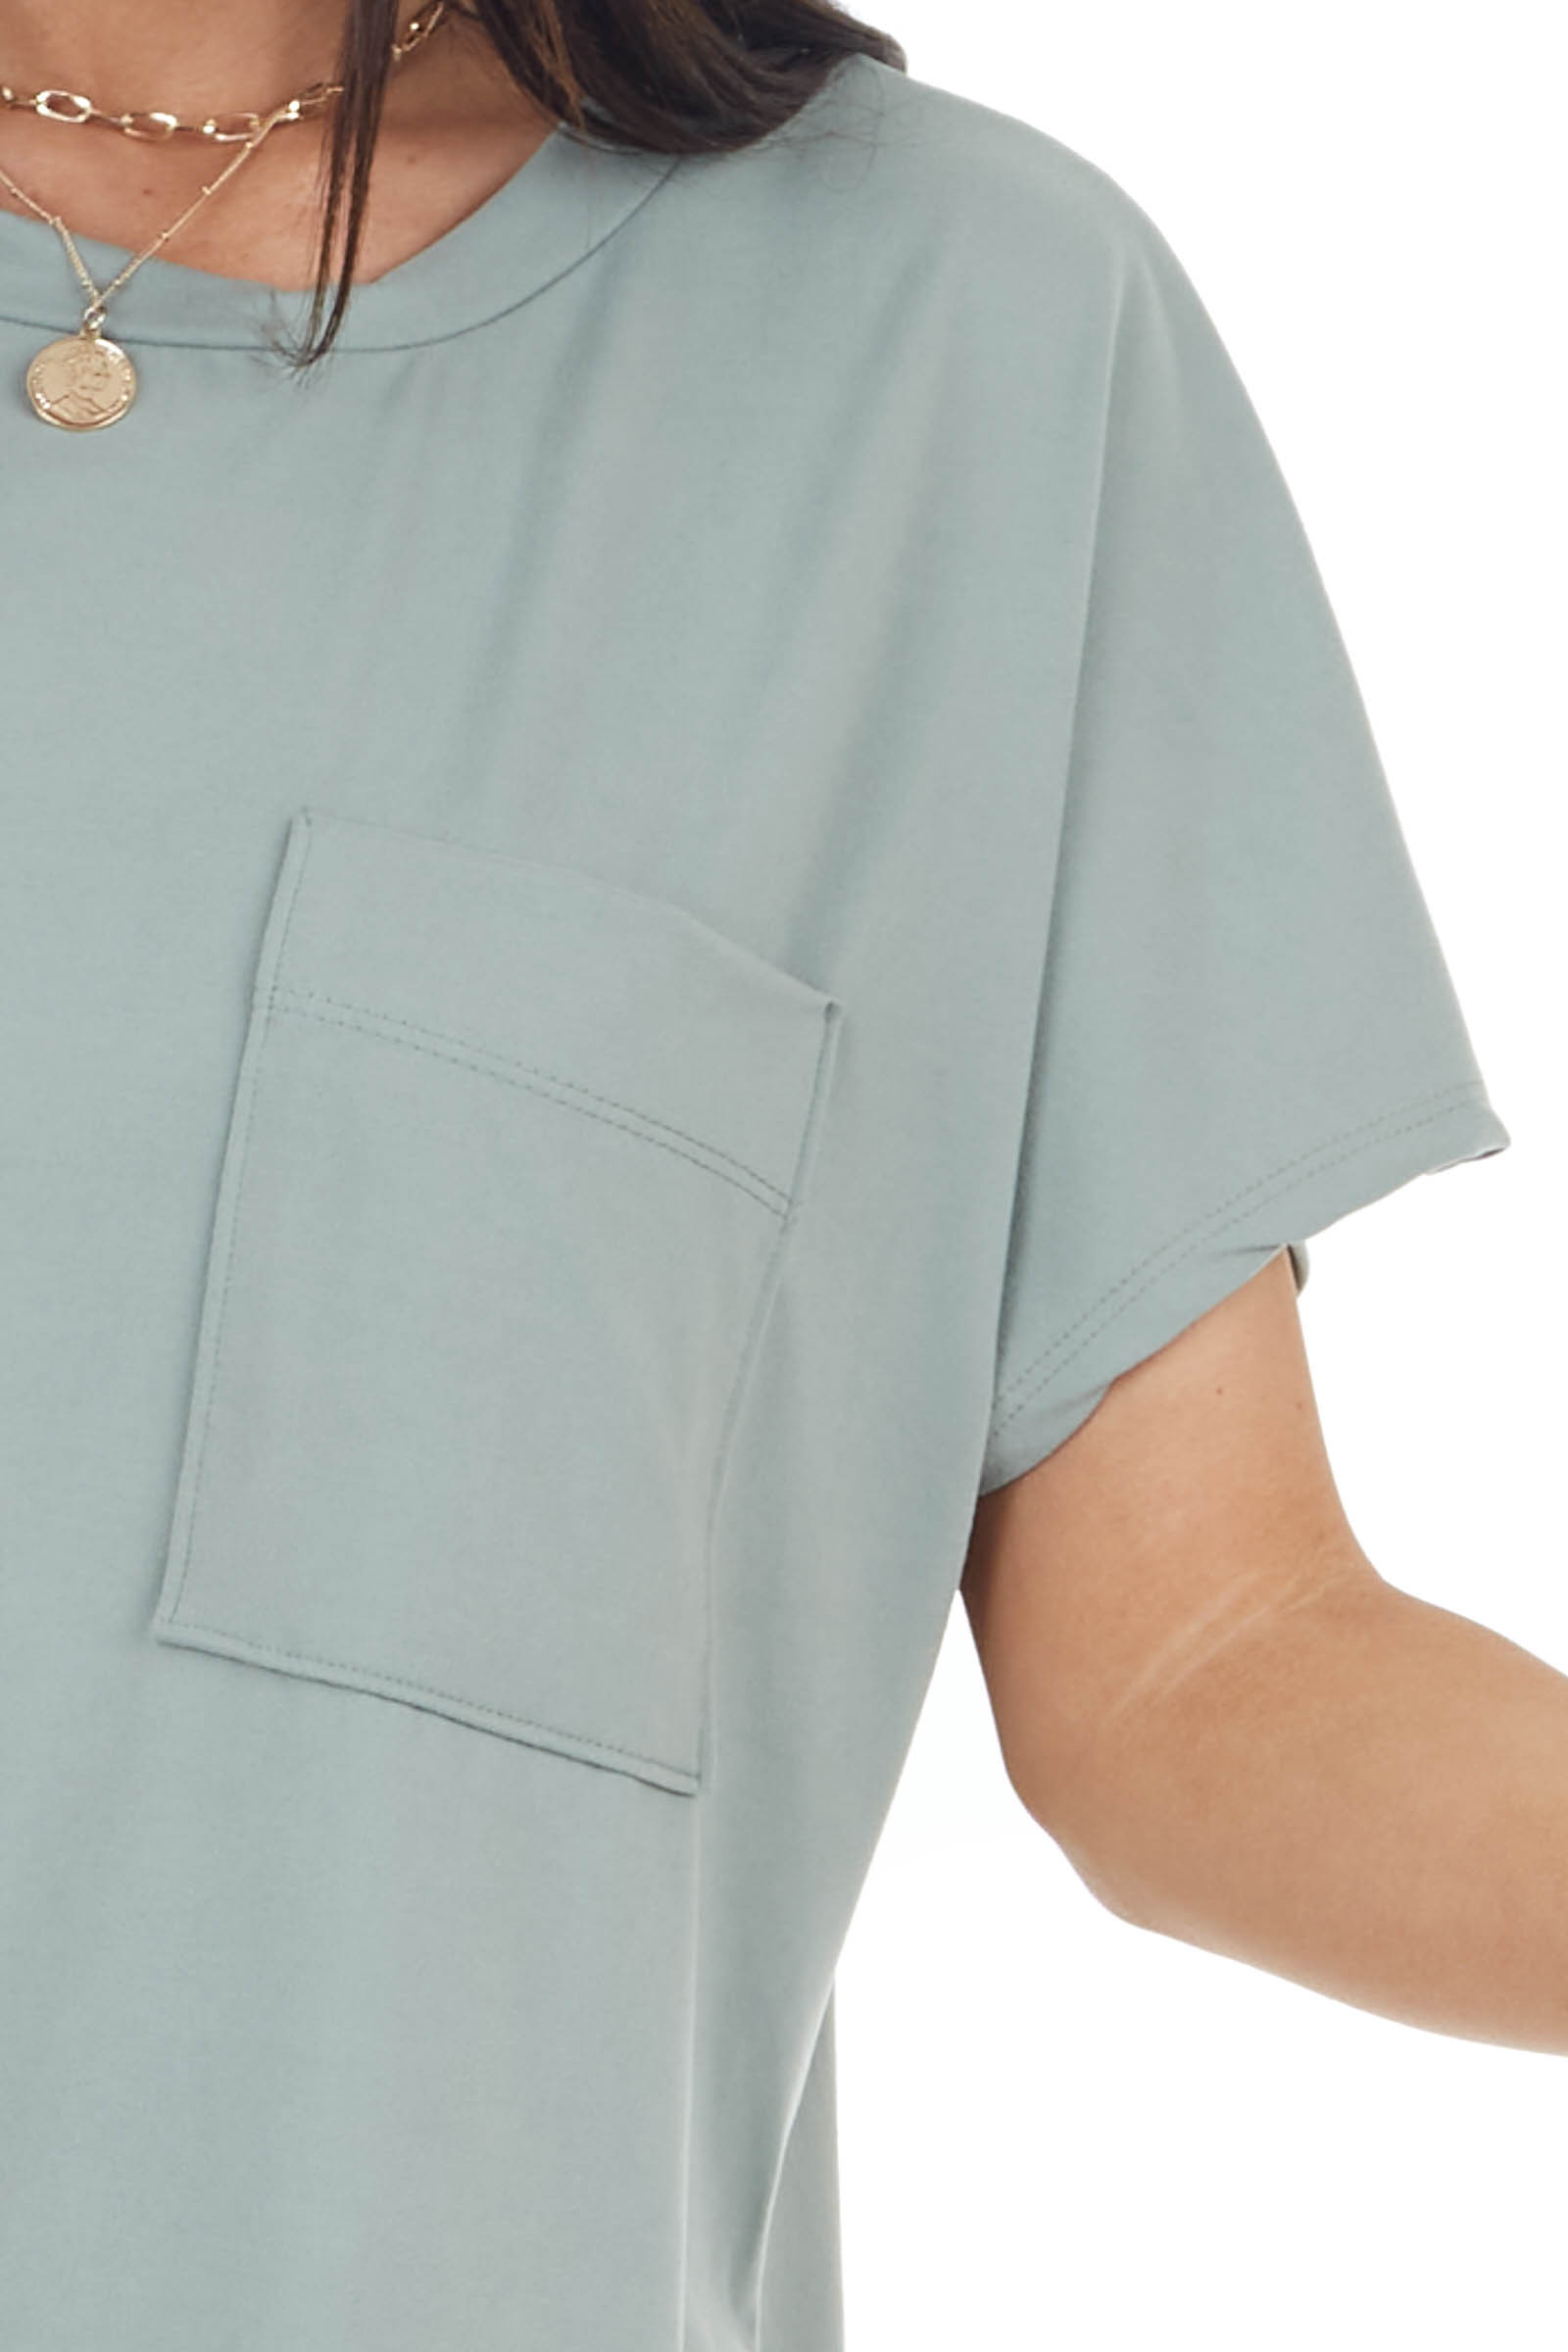 Sage Green Short Sleeve Tee Shirt Dress with Front Pocket